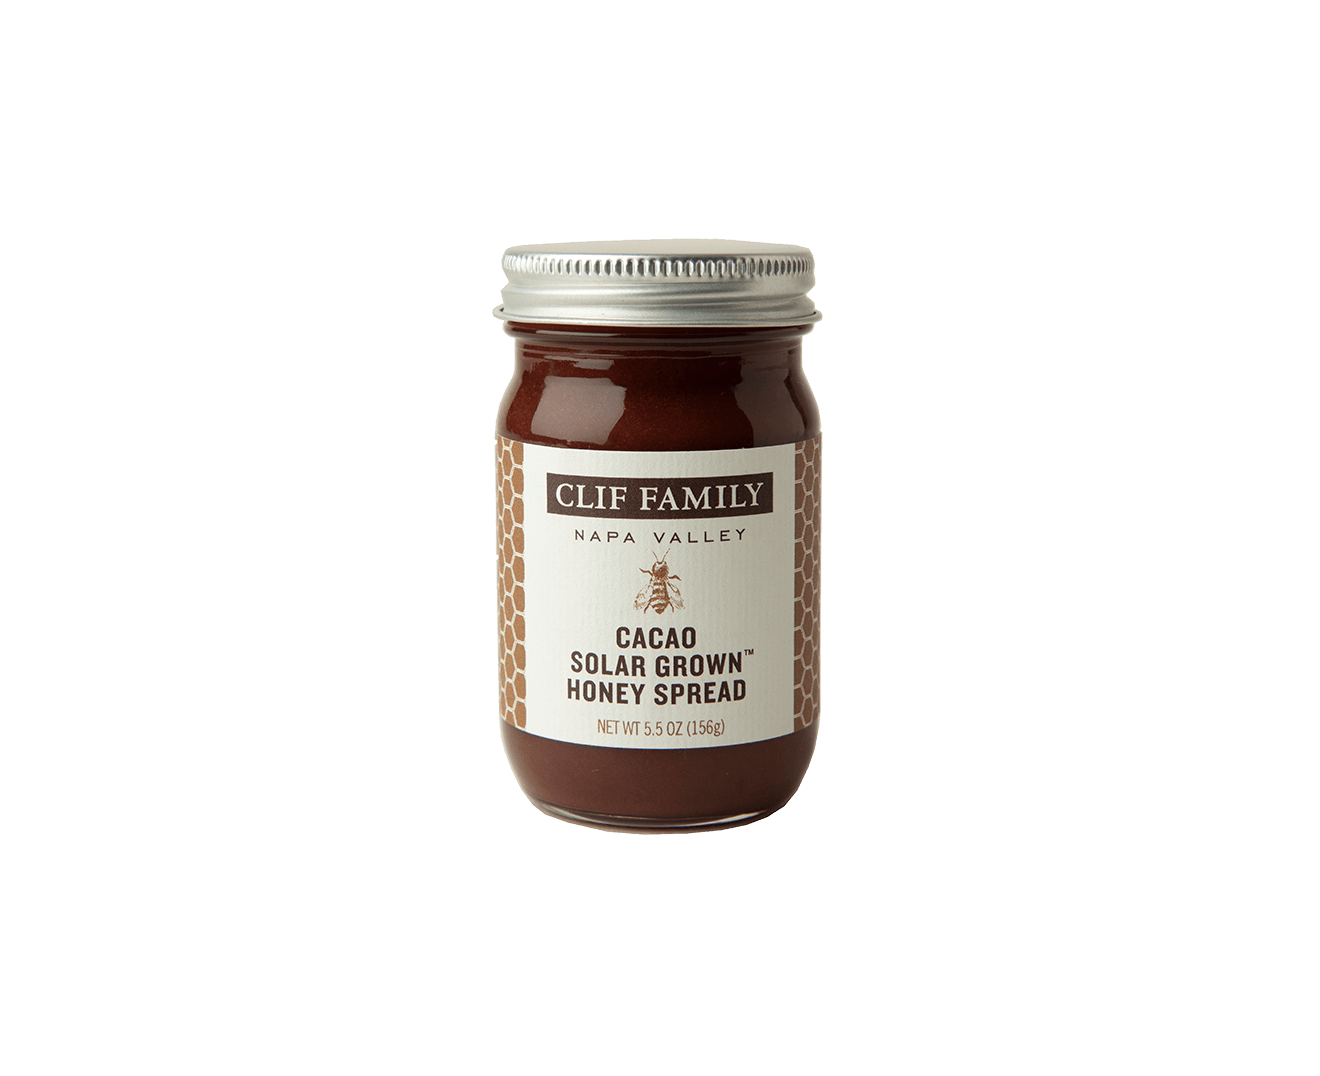 Solar Grown™ Cacao Honey Spread packaging